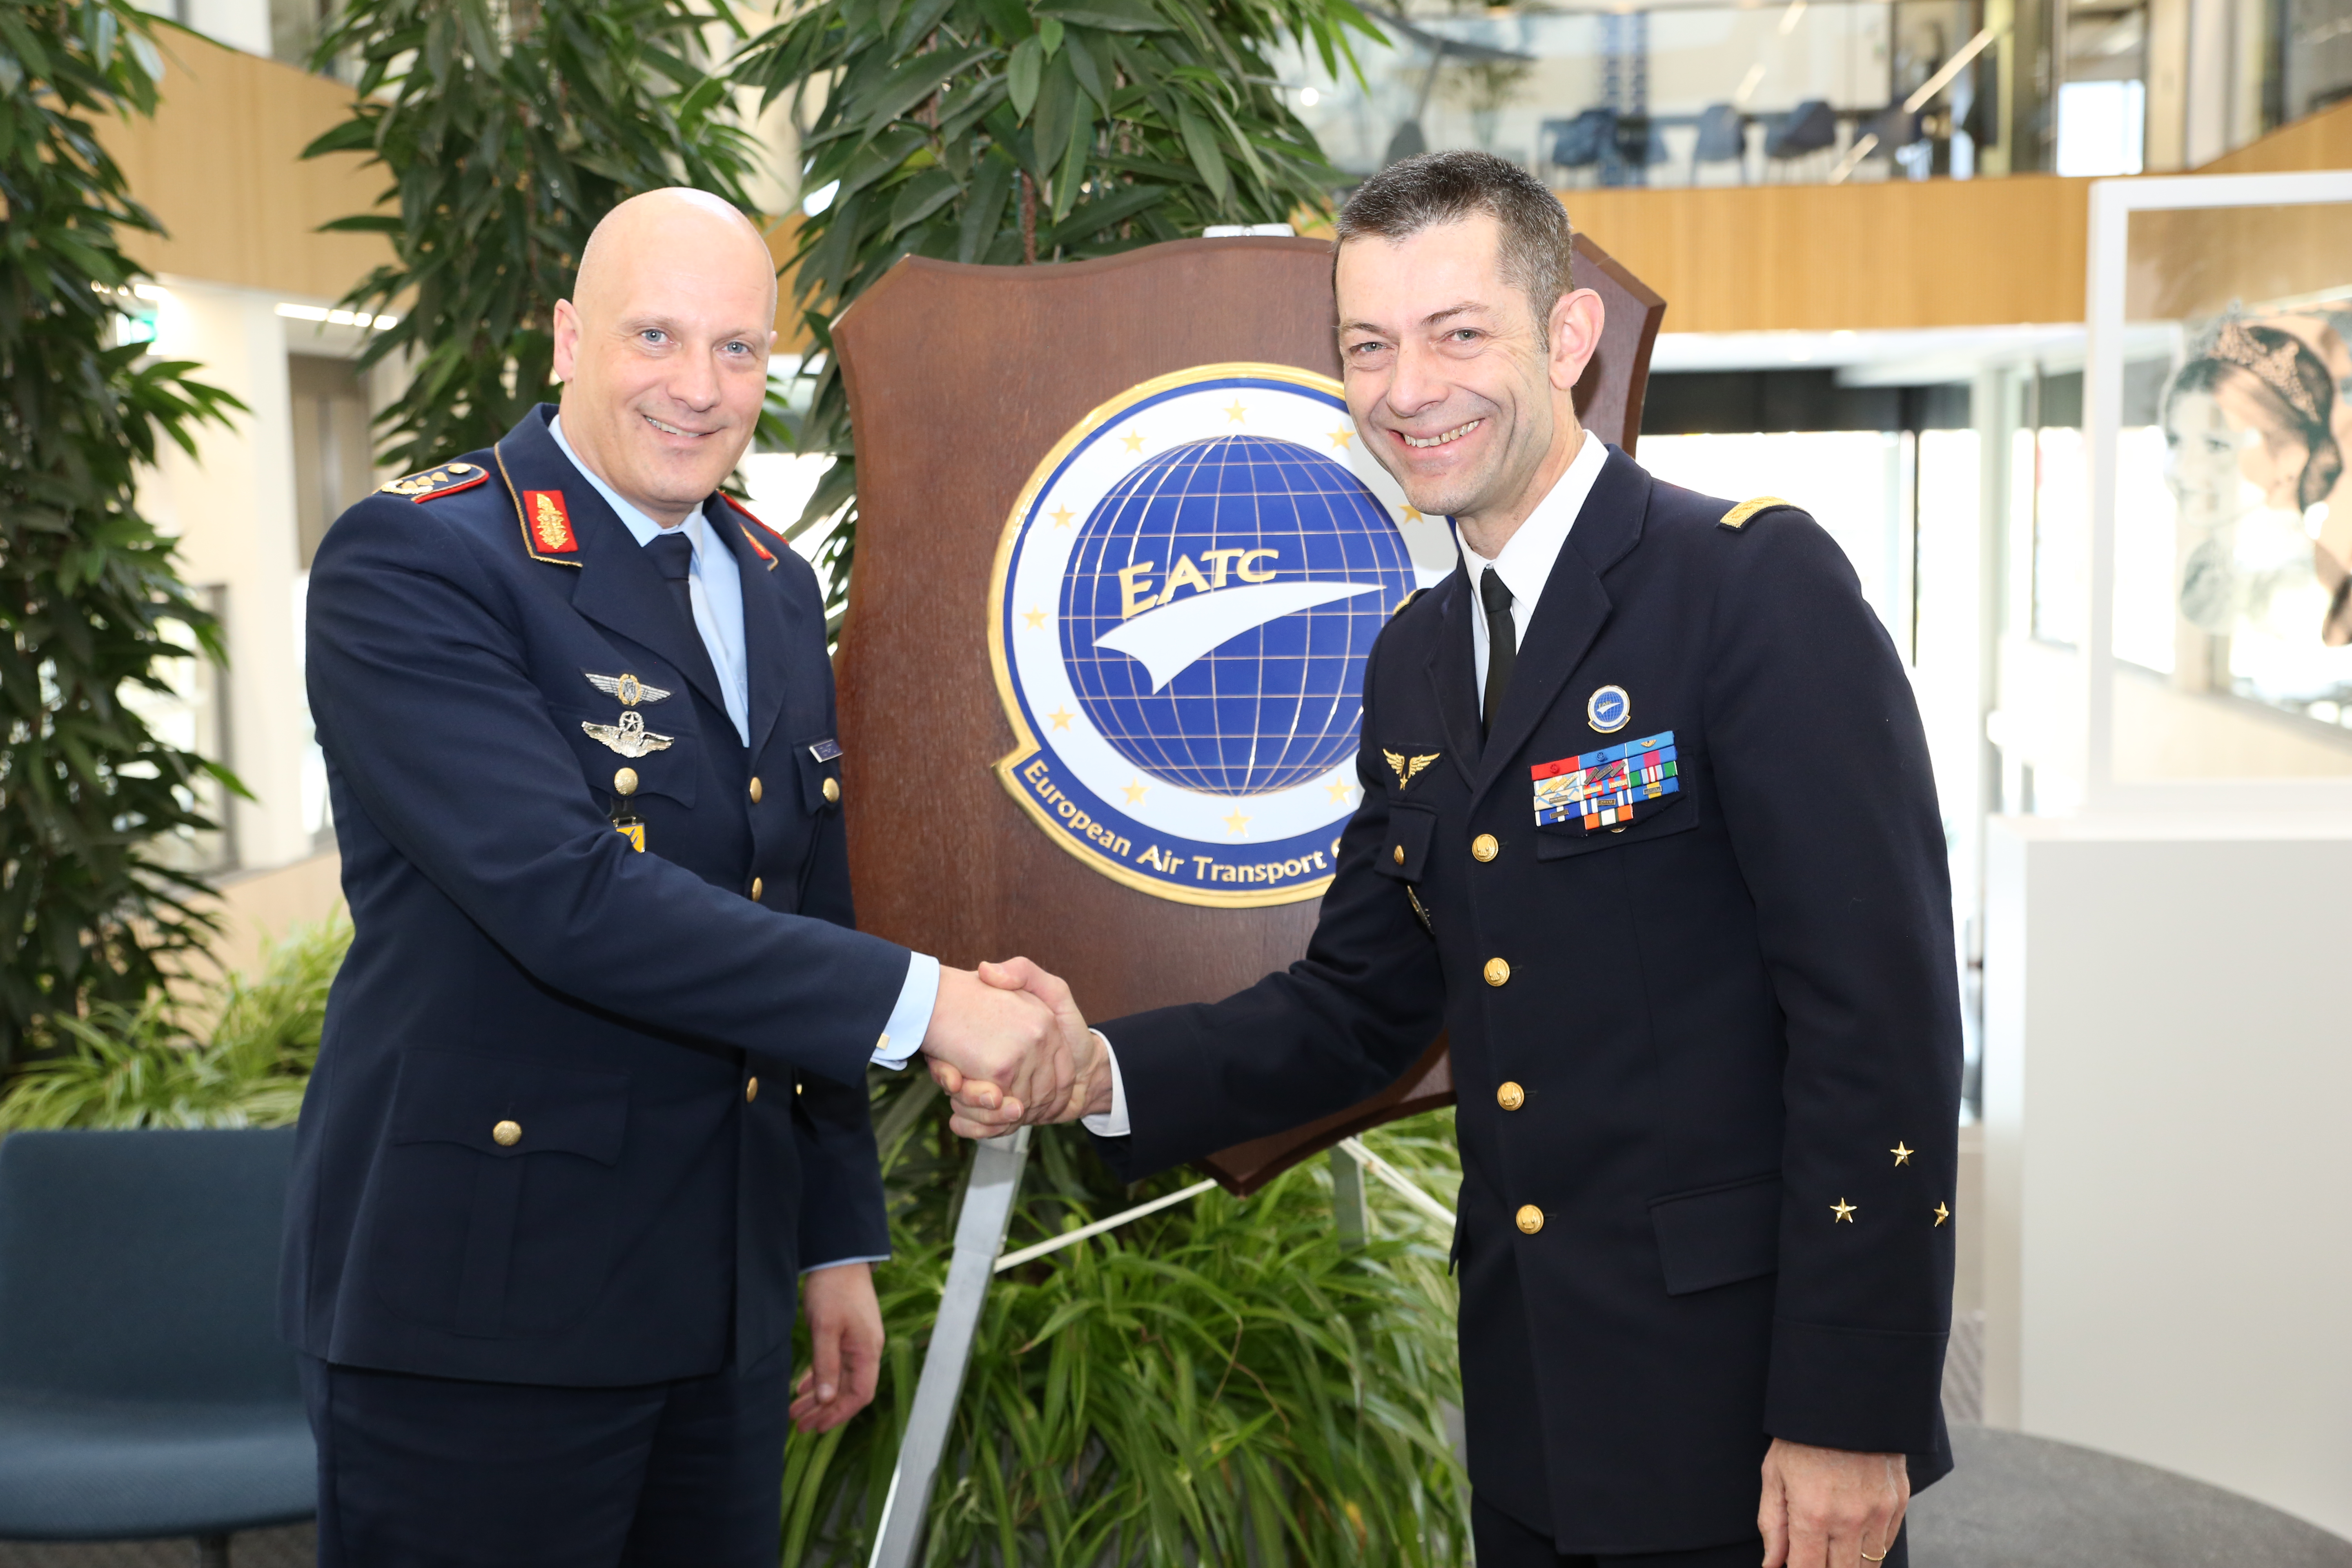 The Chief of Staff of the German Air Force visits EATC.